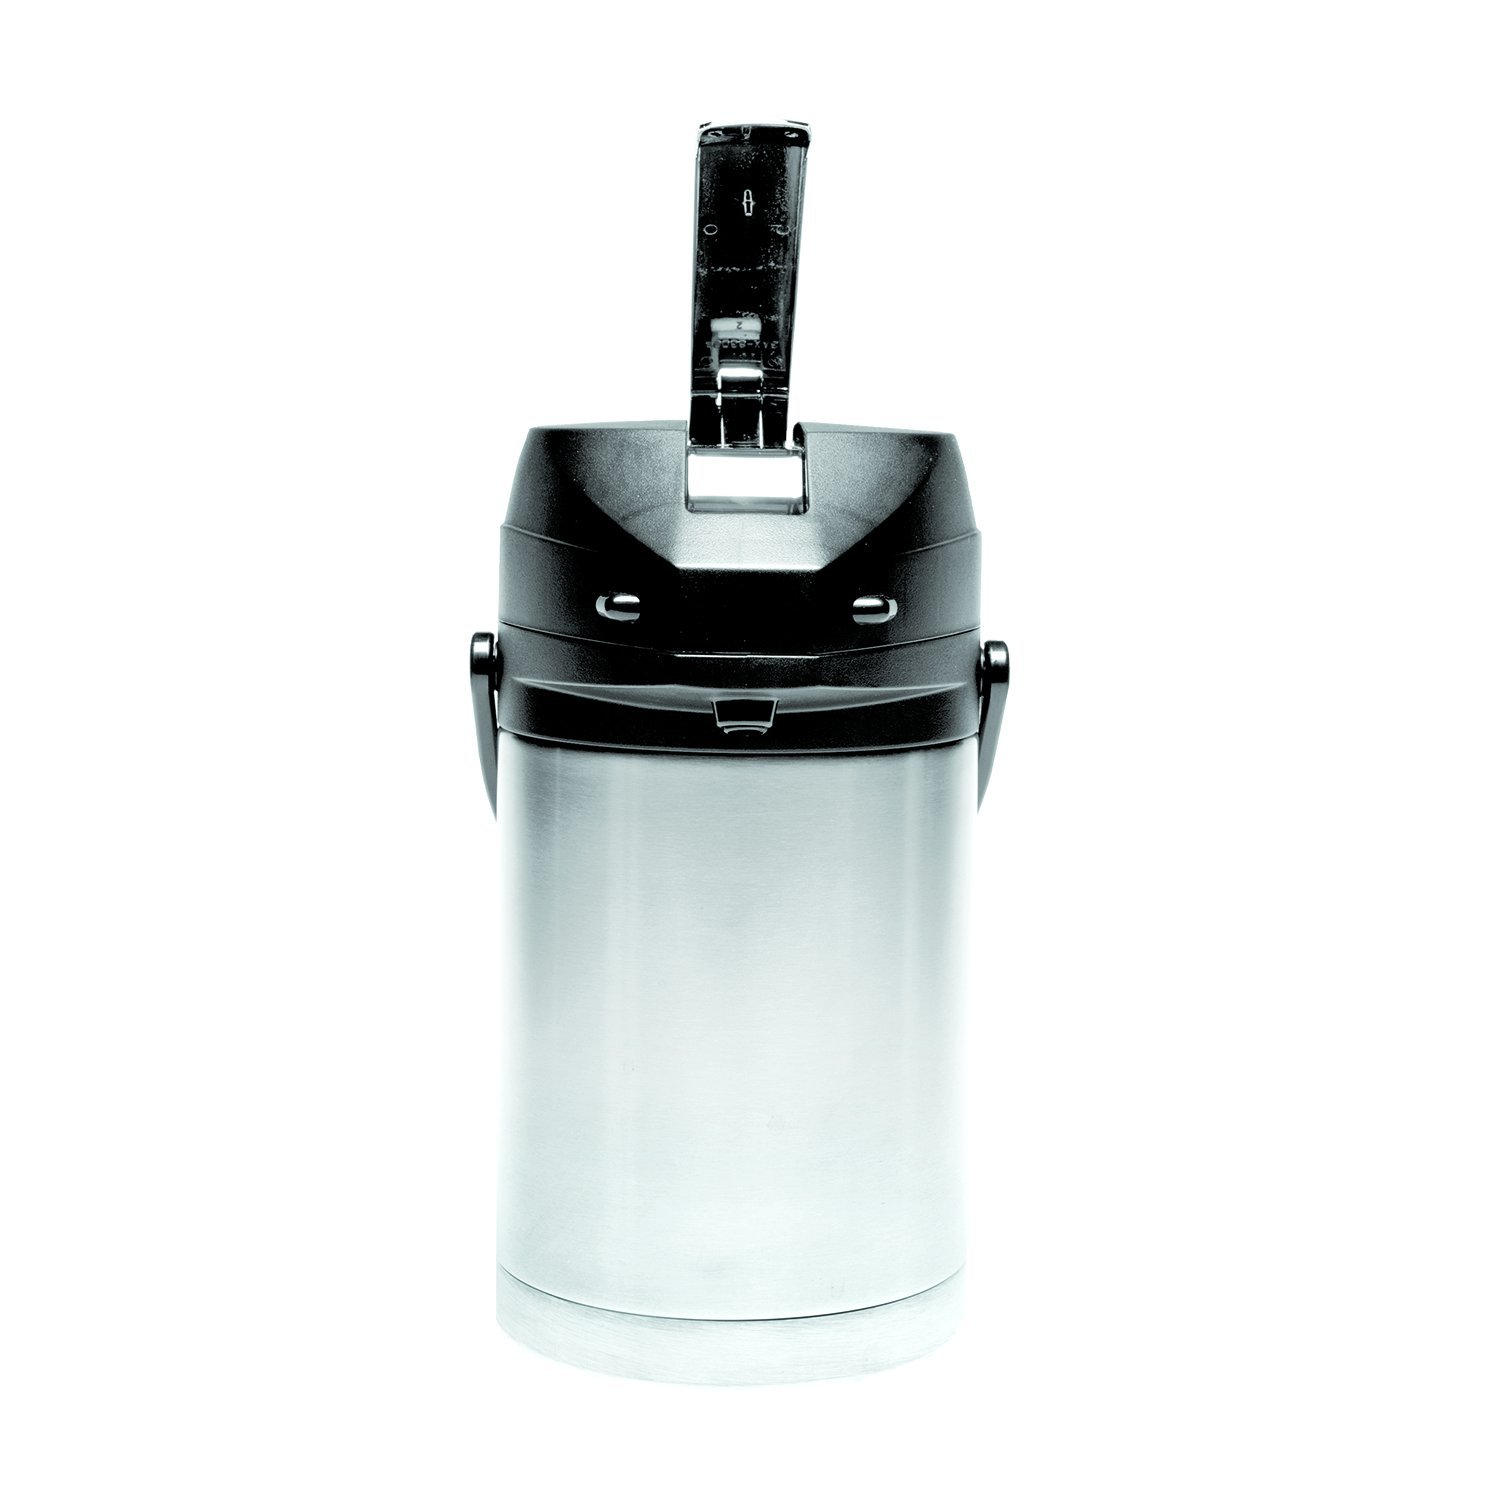 Service Ideas CTAL22BL Airpot with Lever, Stainless Steel Lined, 2.2 L, Black Top